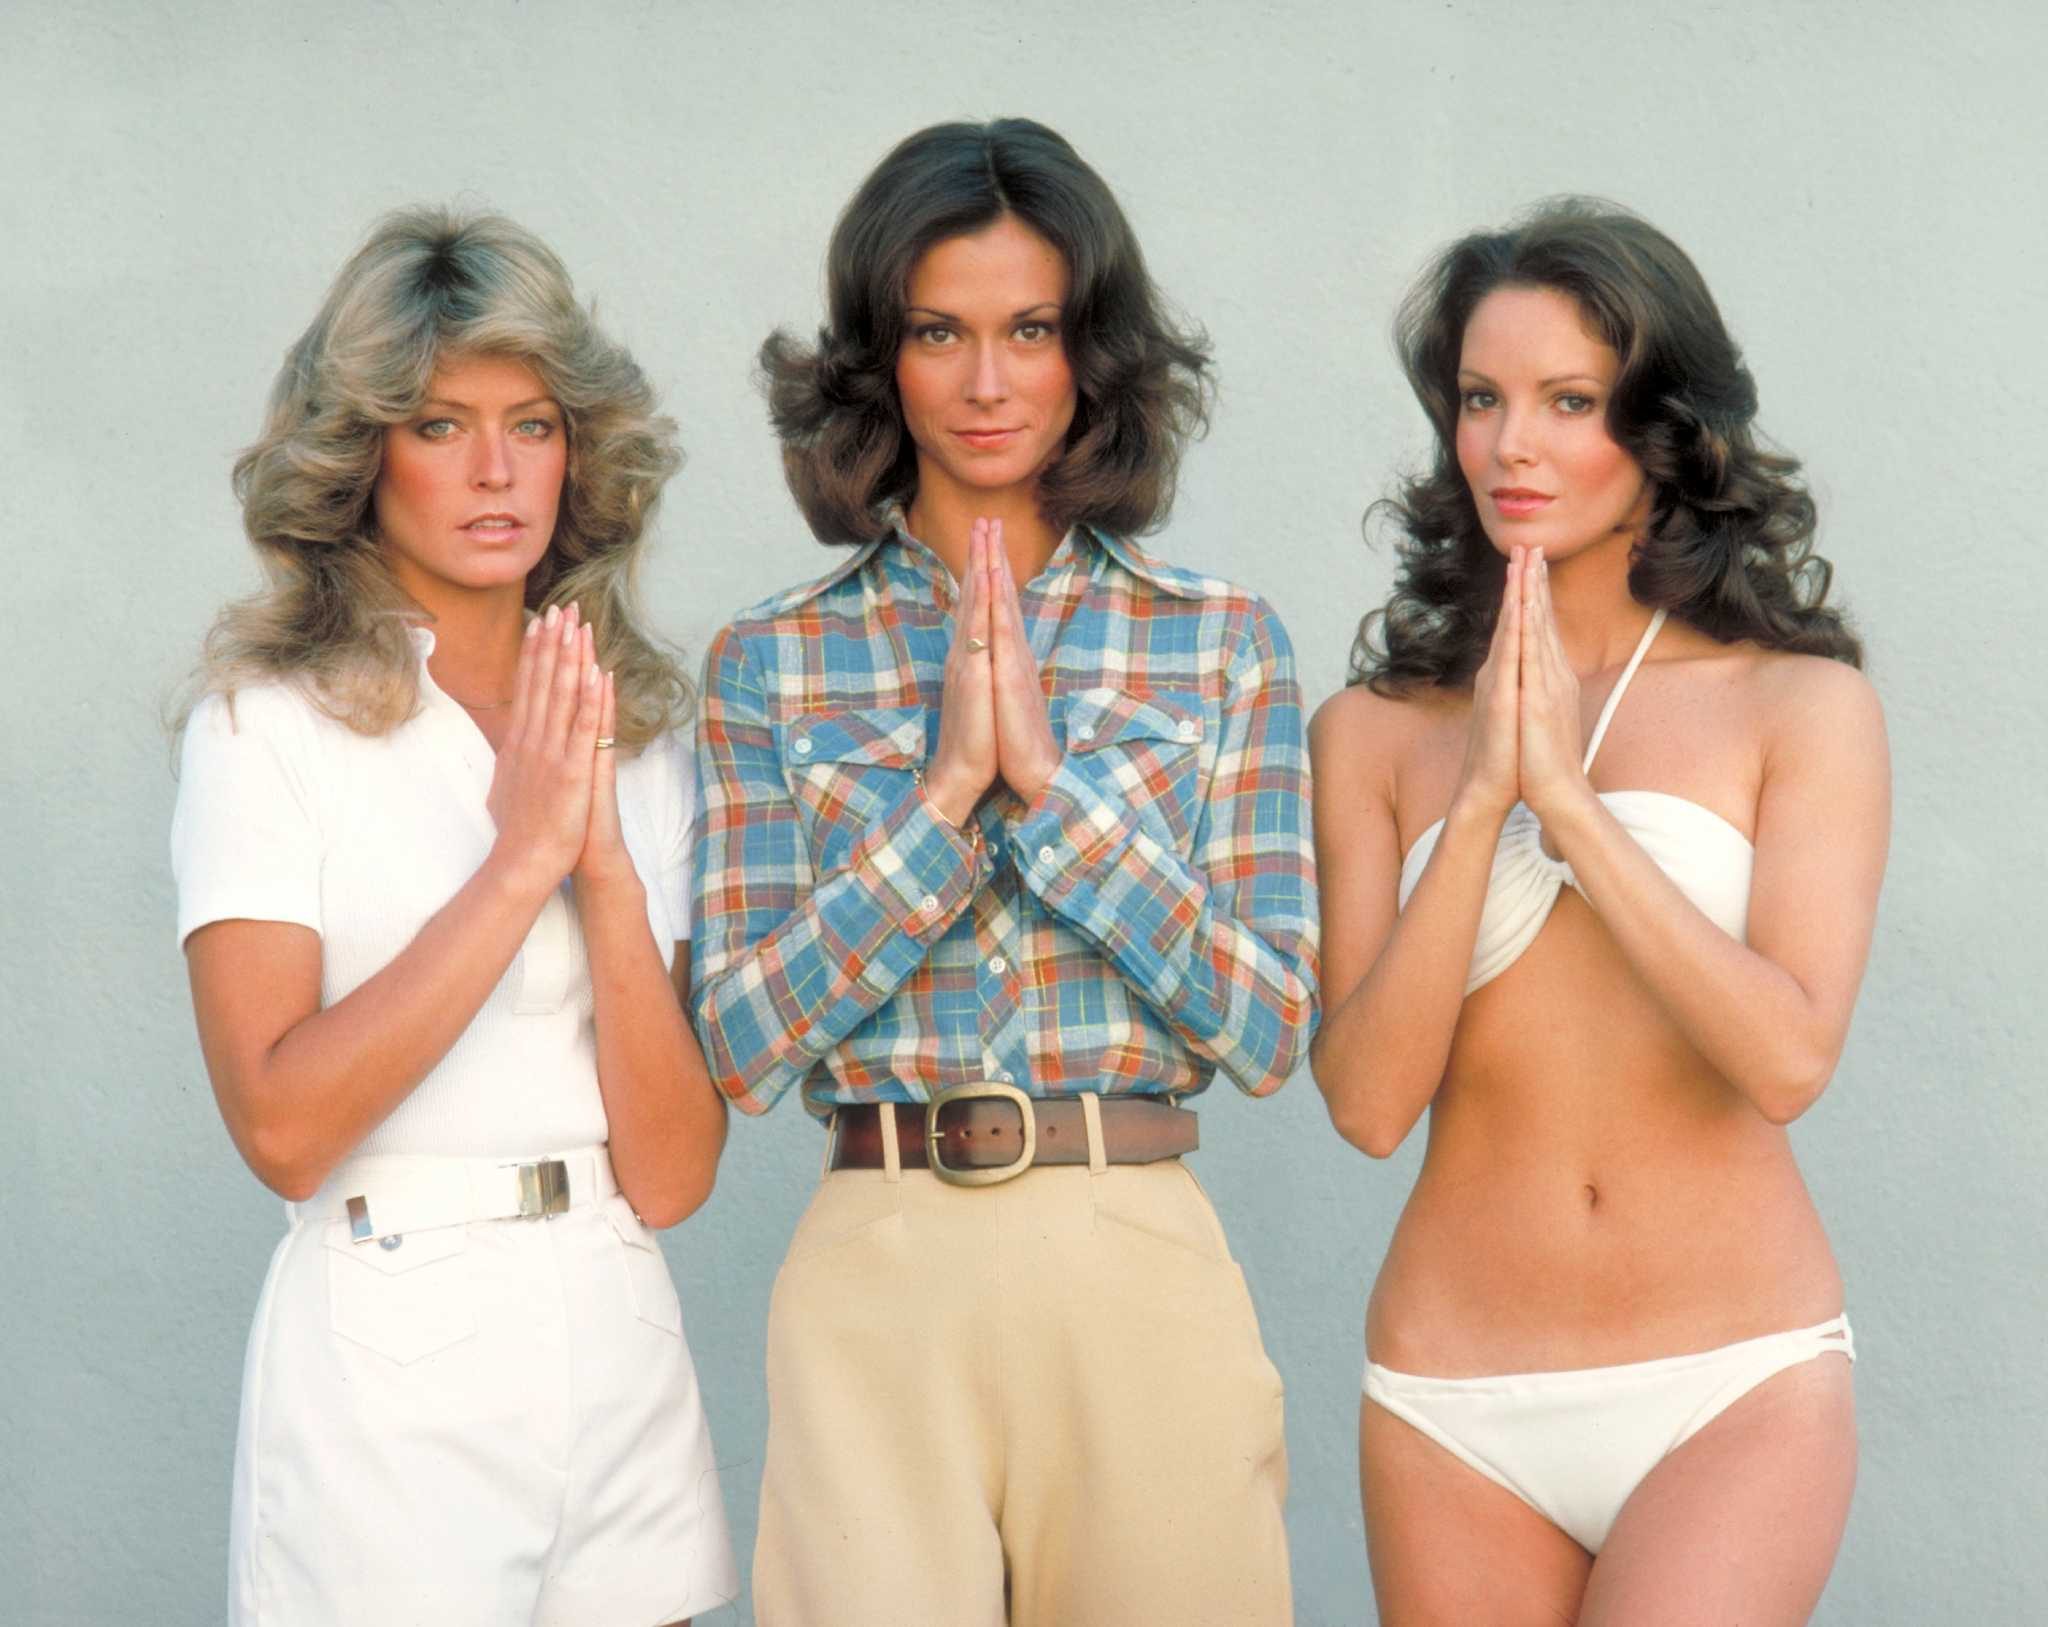 How Well Do You Know Charlie's Angels?